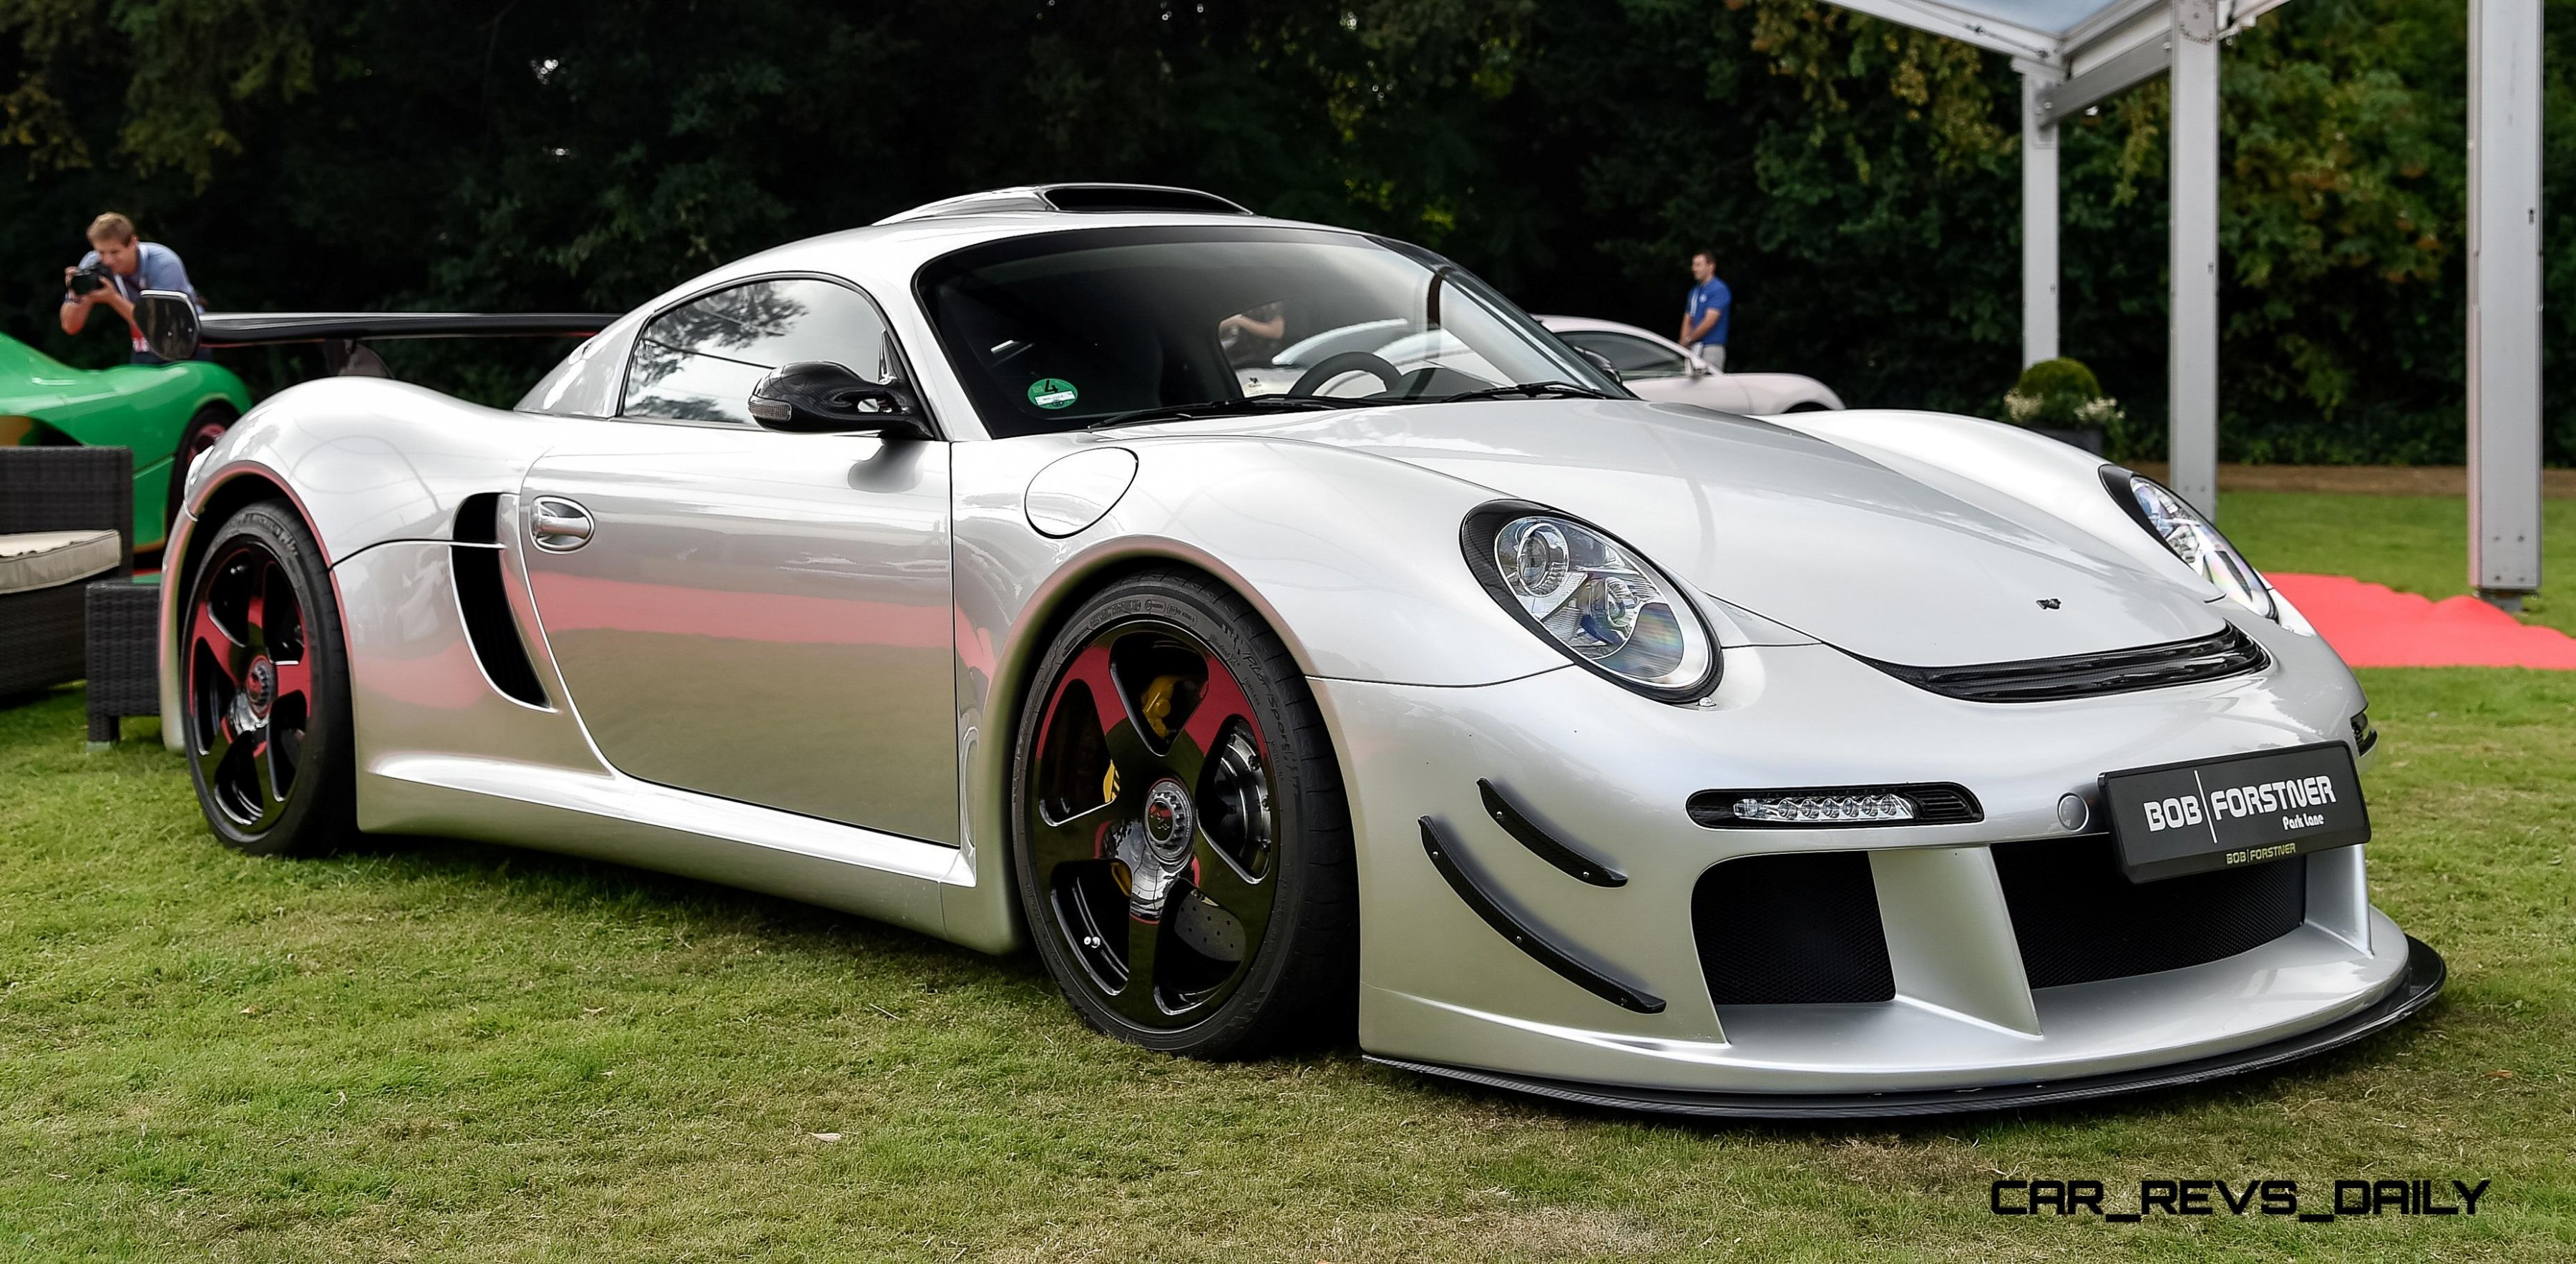 When someone says what a beautiful car, i unfairly compare it to the RUF  CTR3 lol.